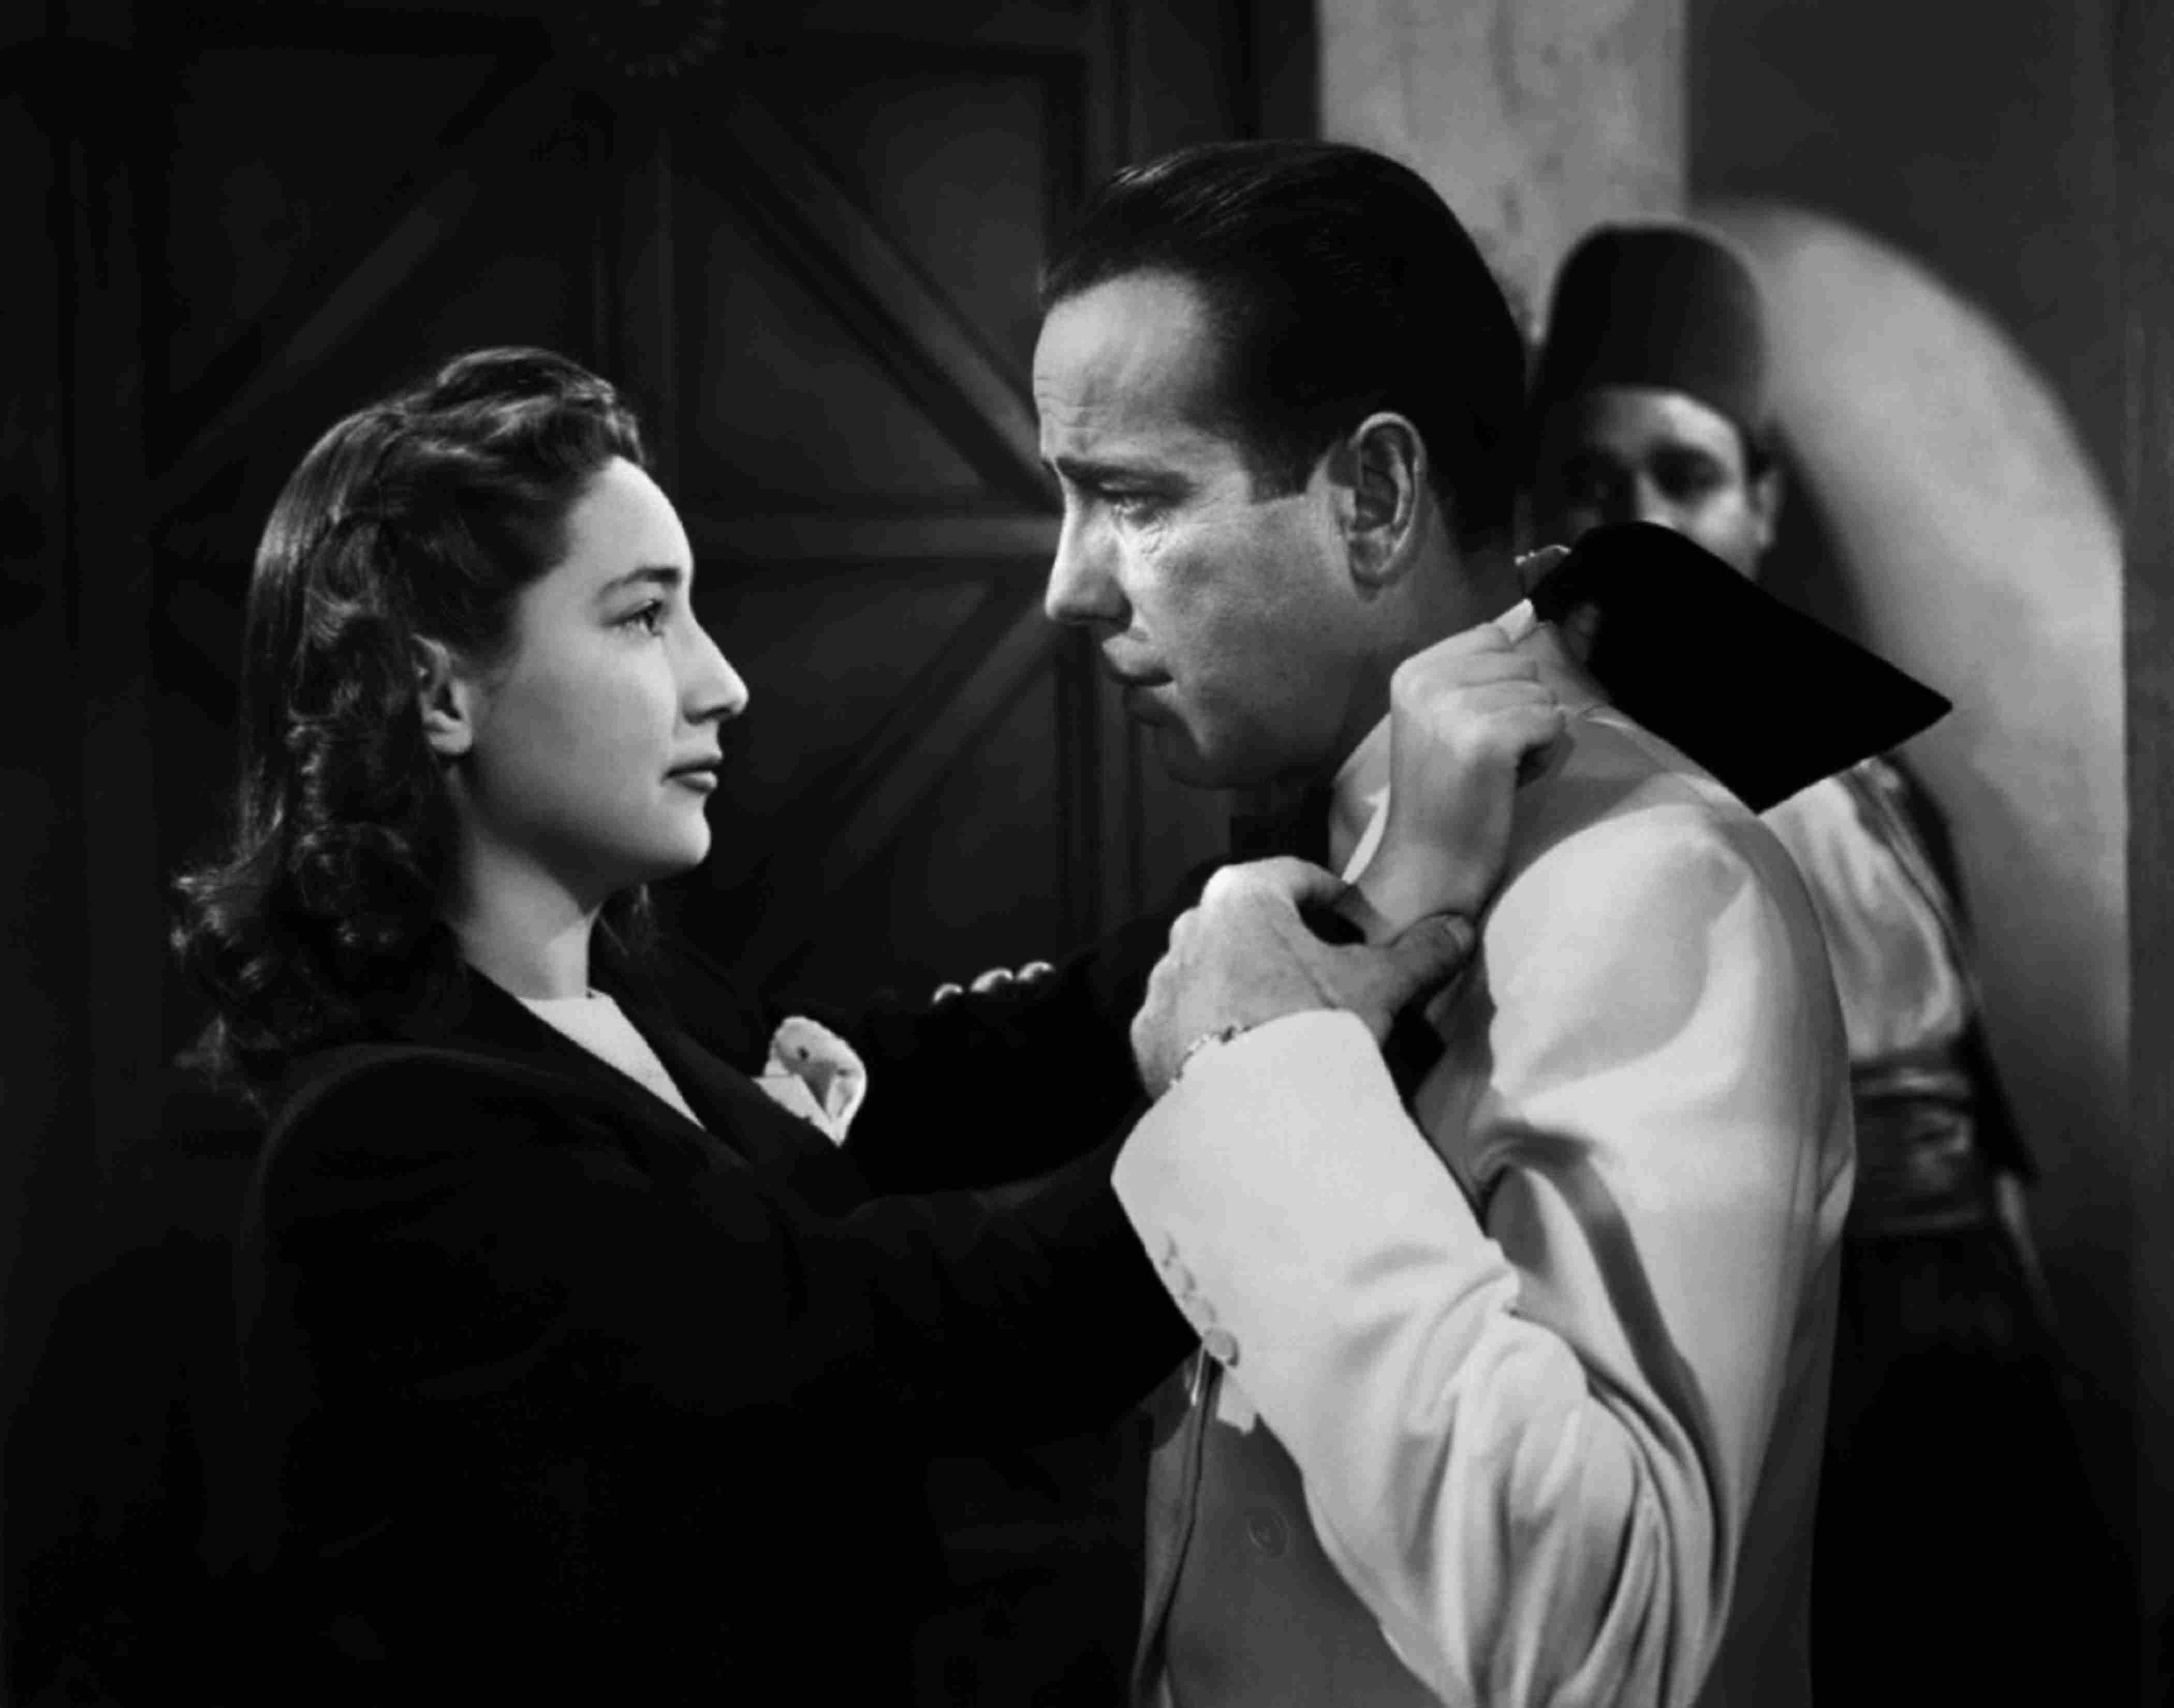 10 Memorable Movie Quotes from 'Casablanca'